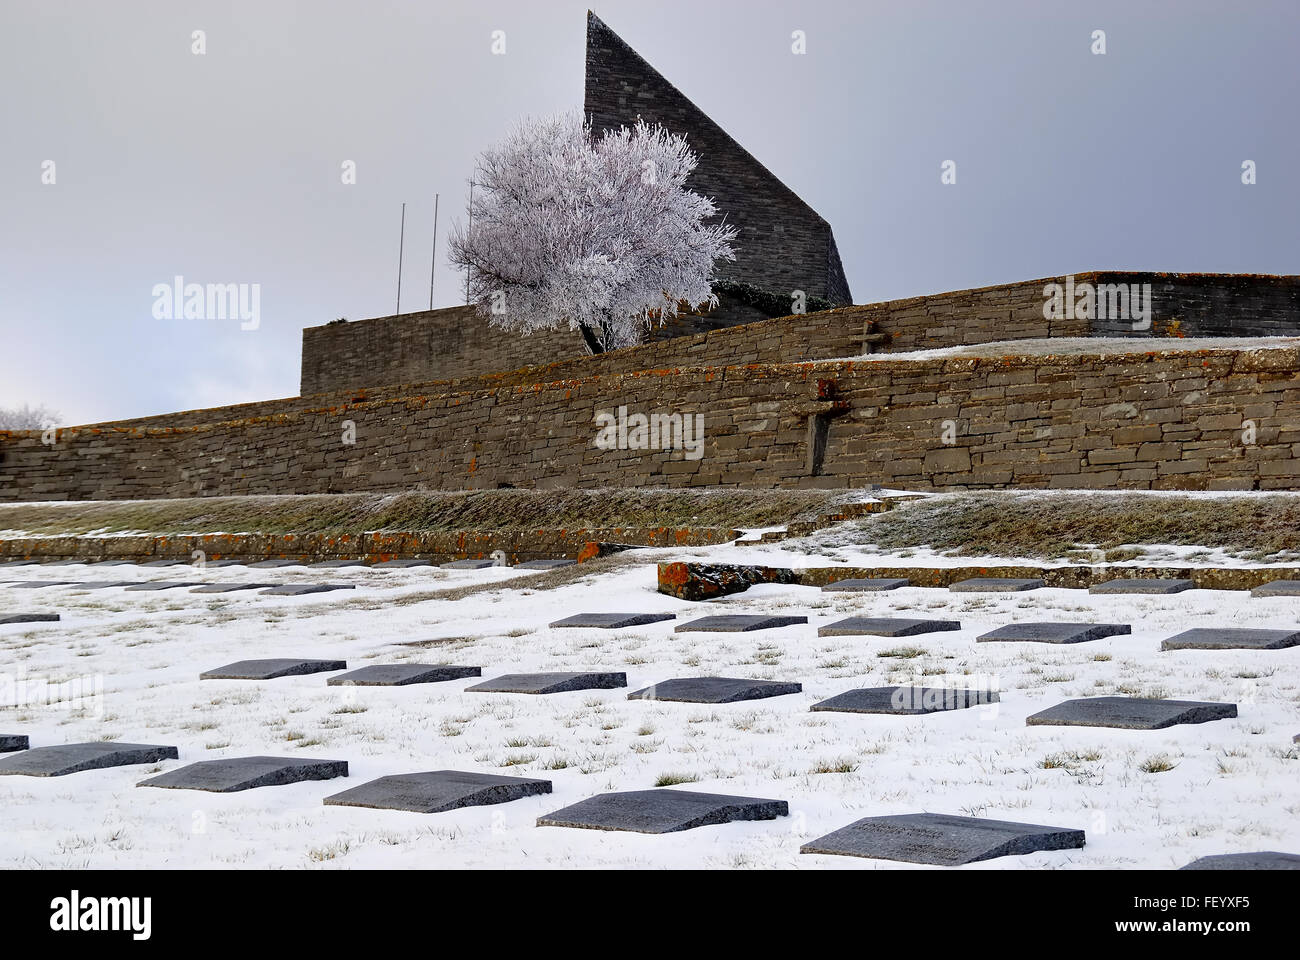 Futa Pictures with wwii. futa pass german cemetery and memorial in the snow. 30.658